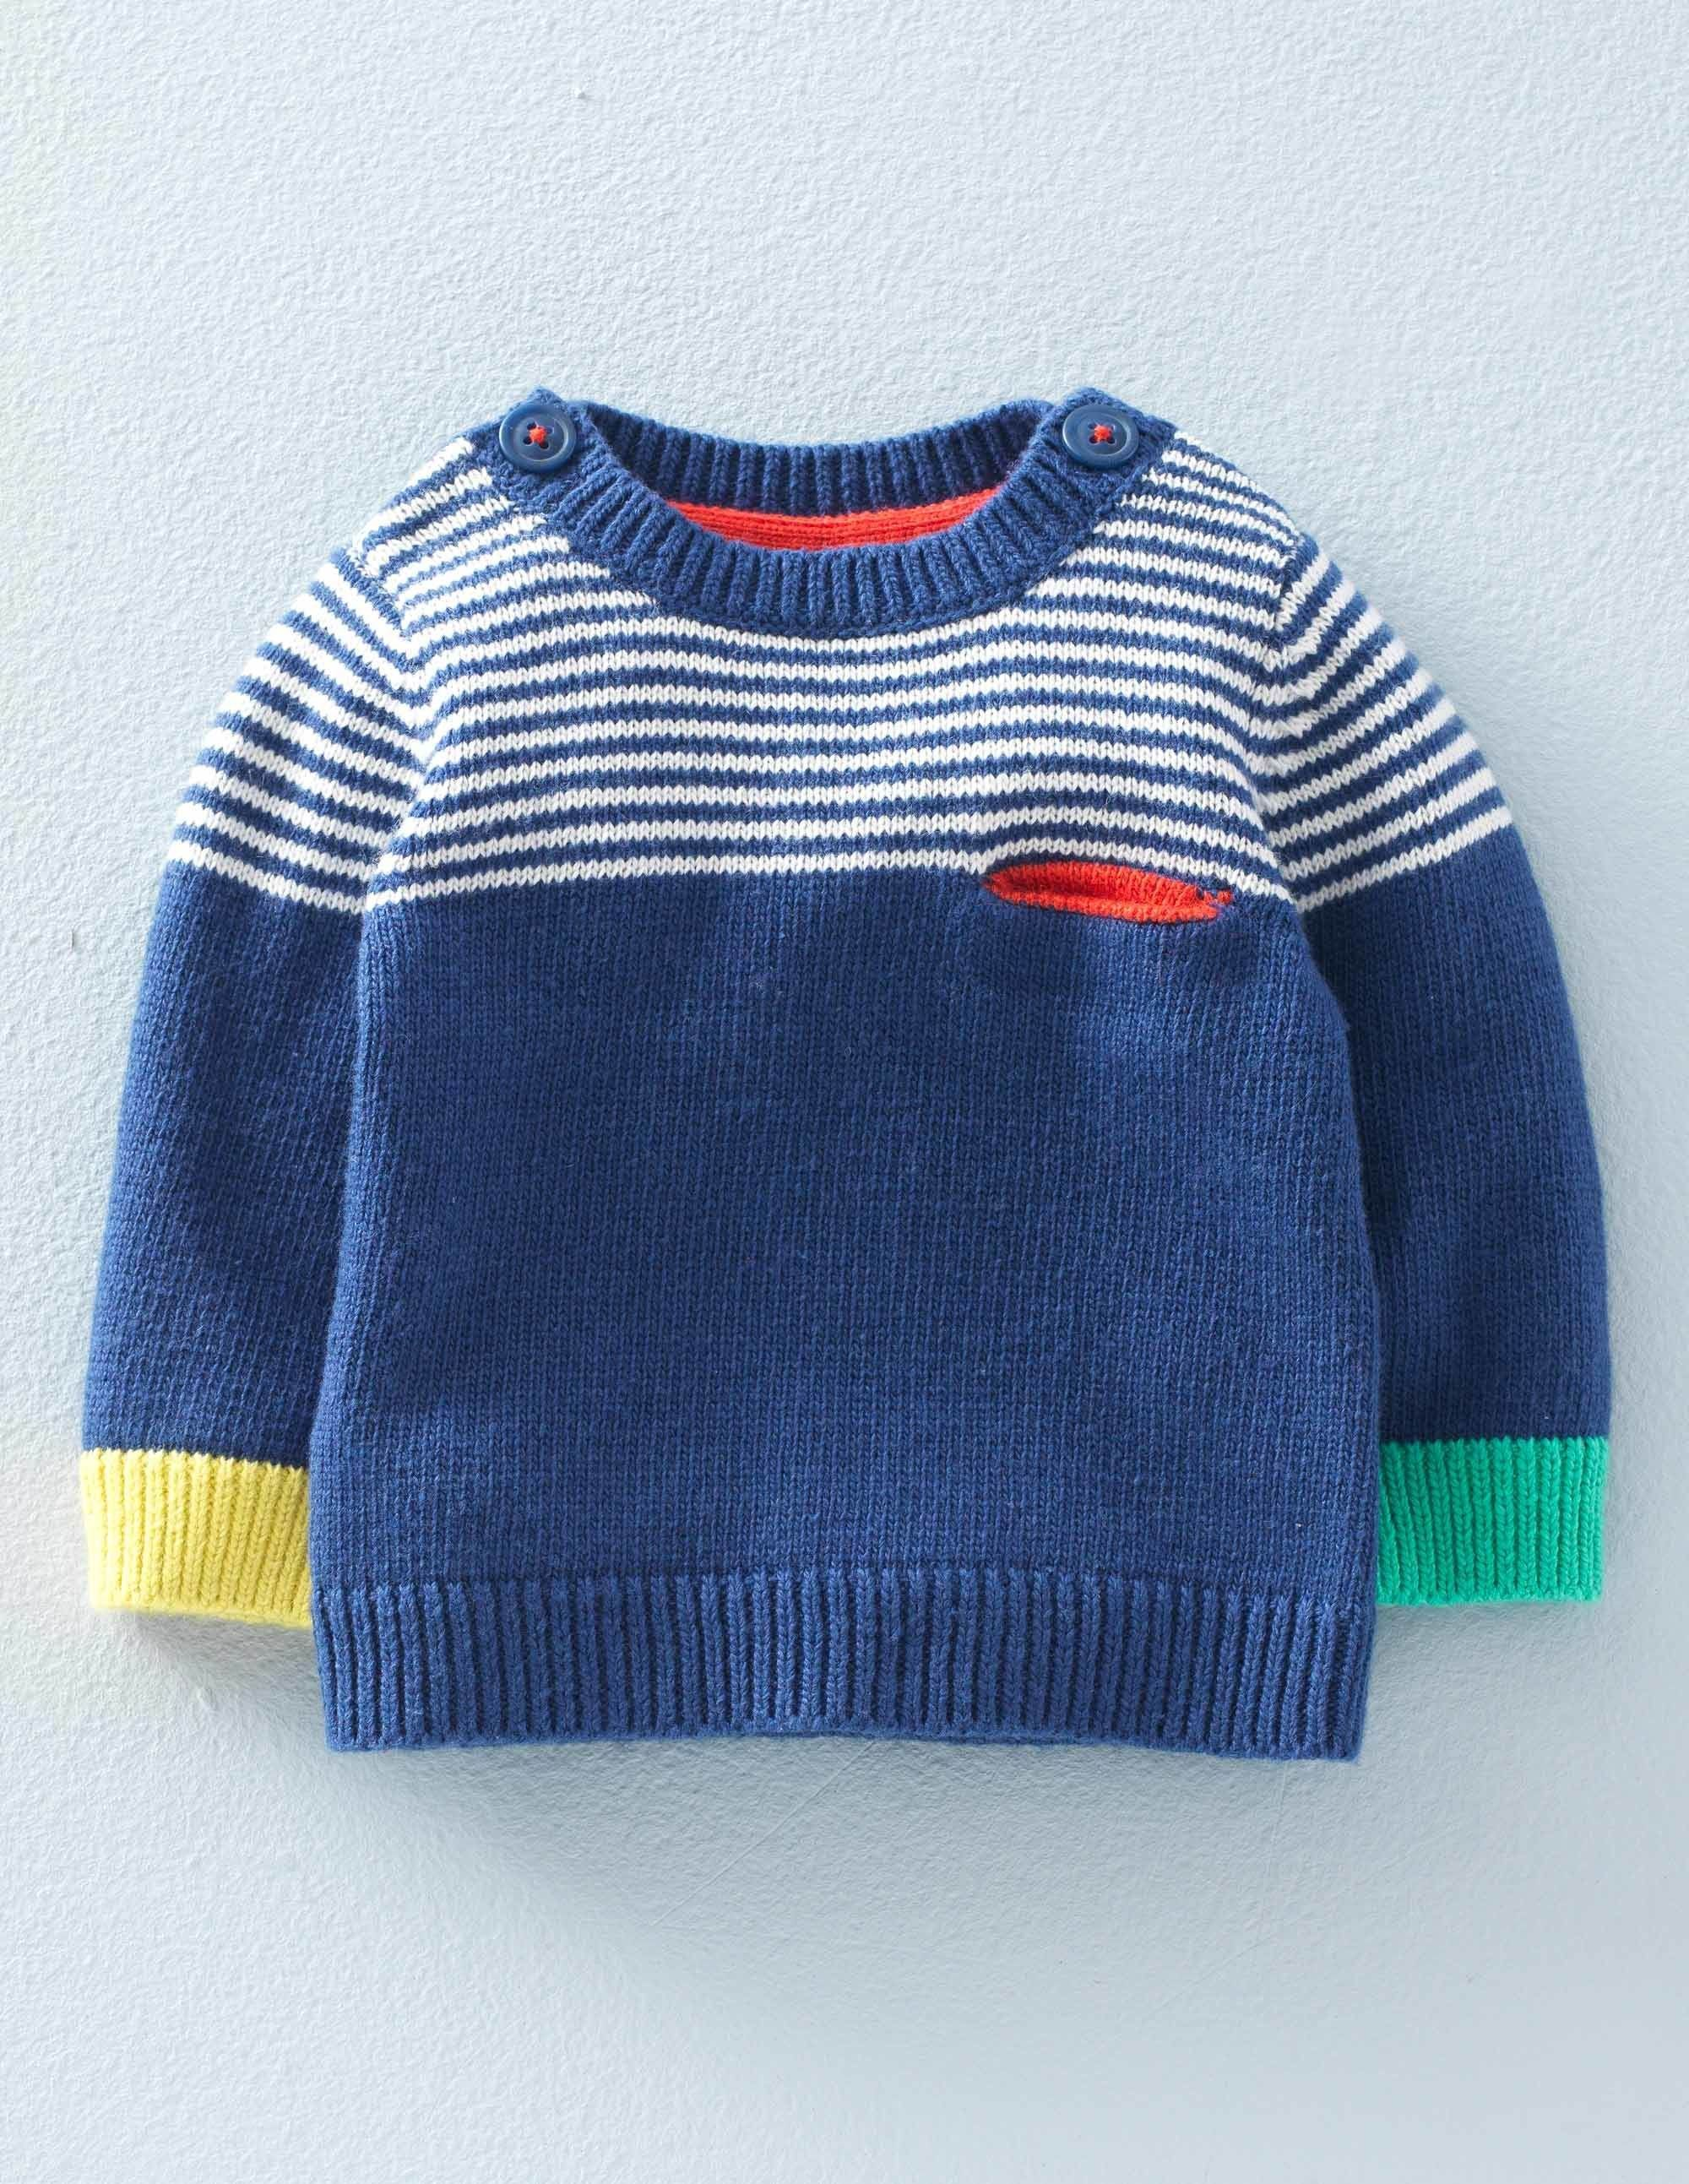 Witziger Pullover … | Strick |…